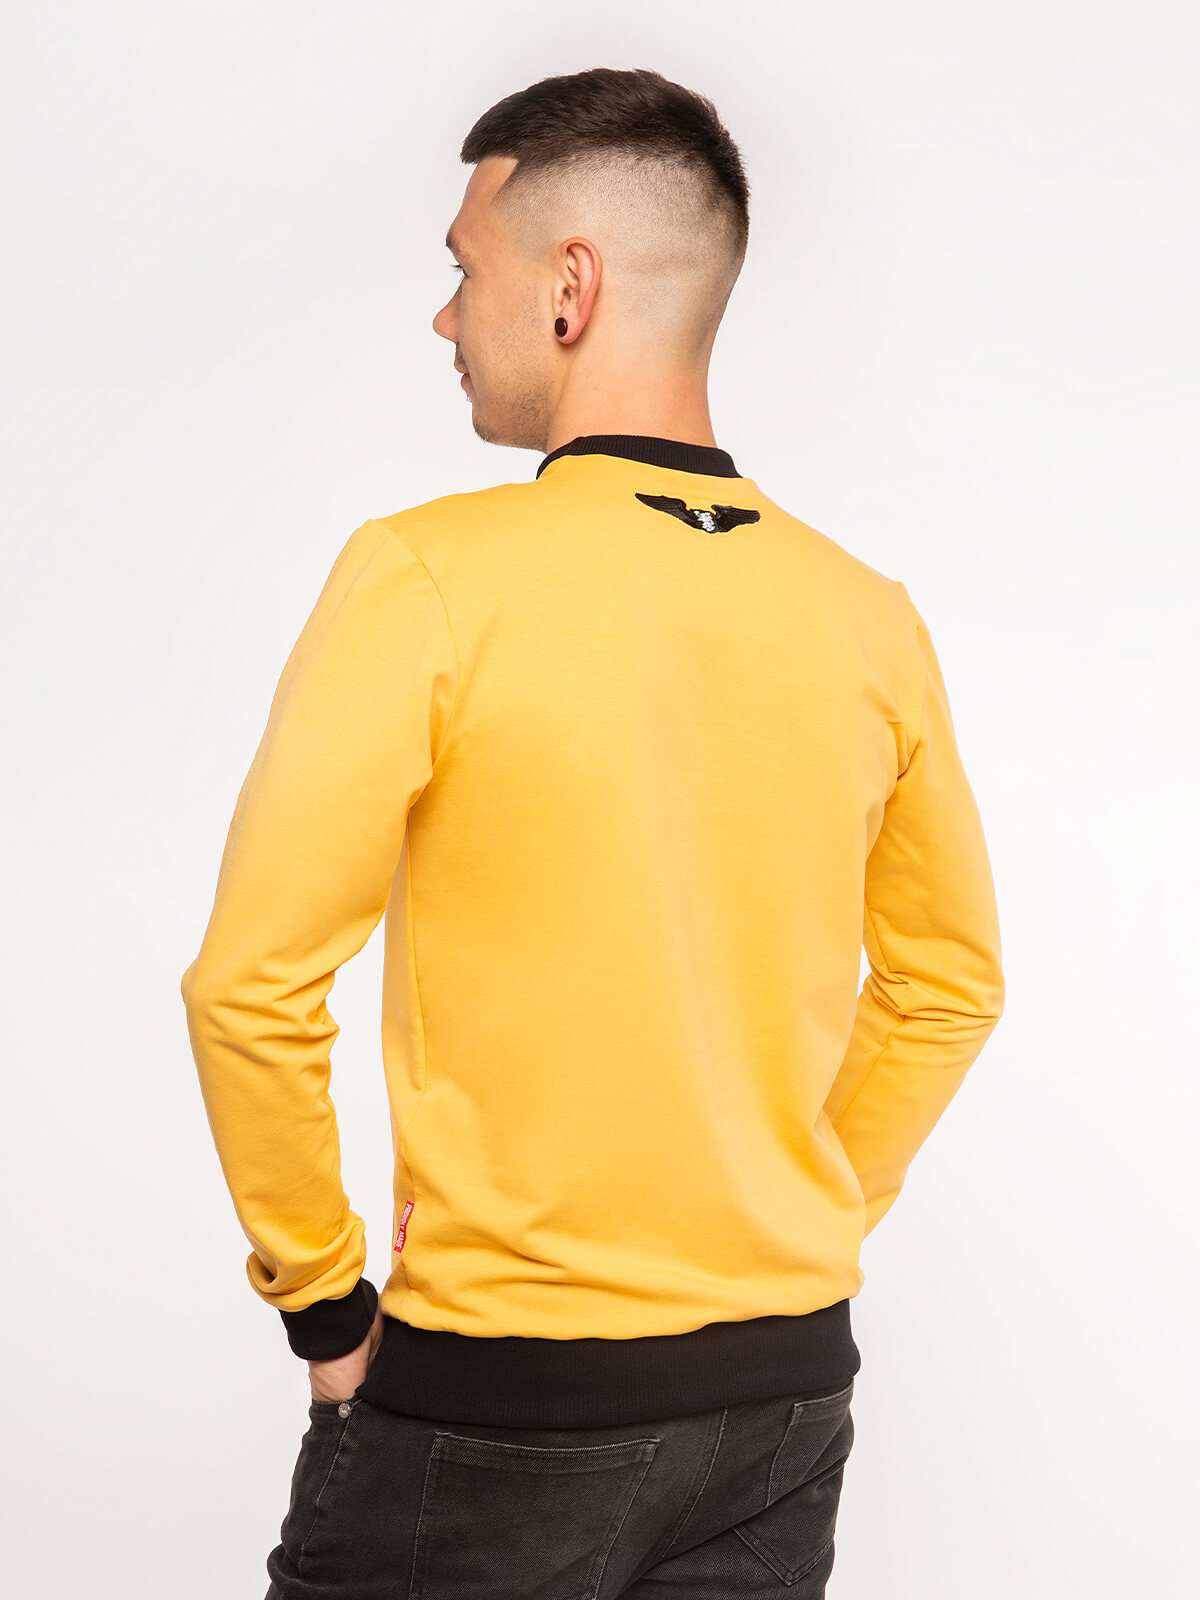 Men's Long Sleeves Have A Nice Flight. Color yellow.  Technique of prints applied: silkscreen printing.